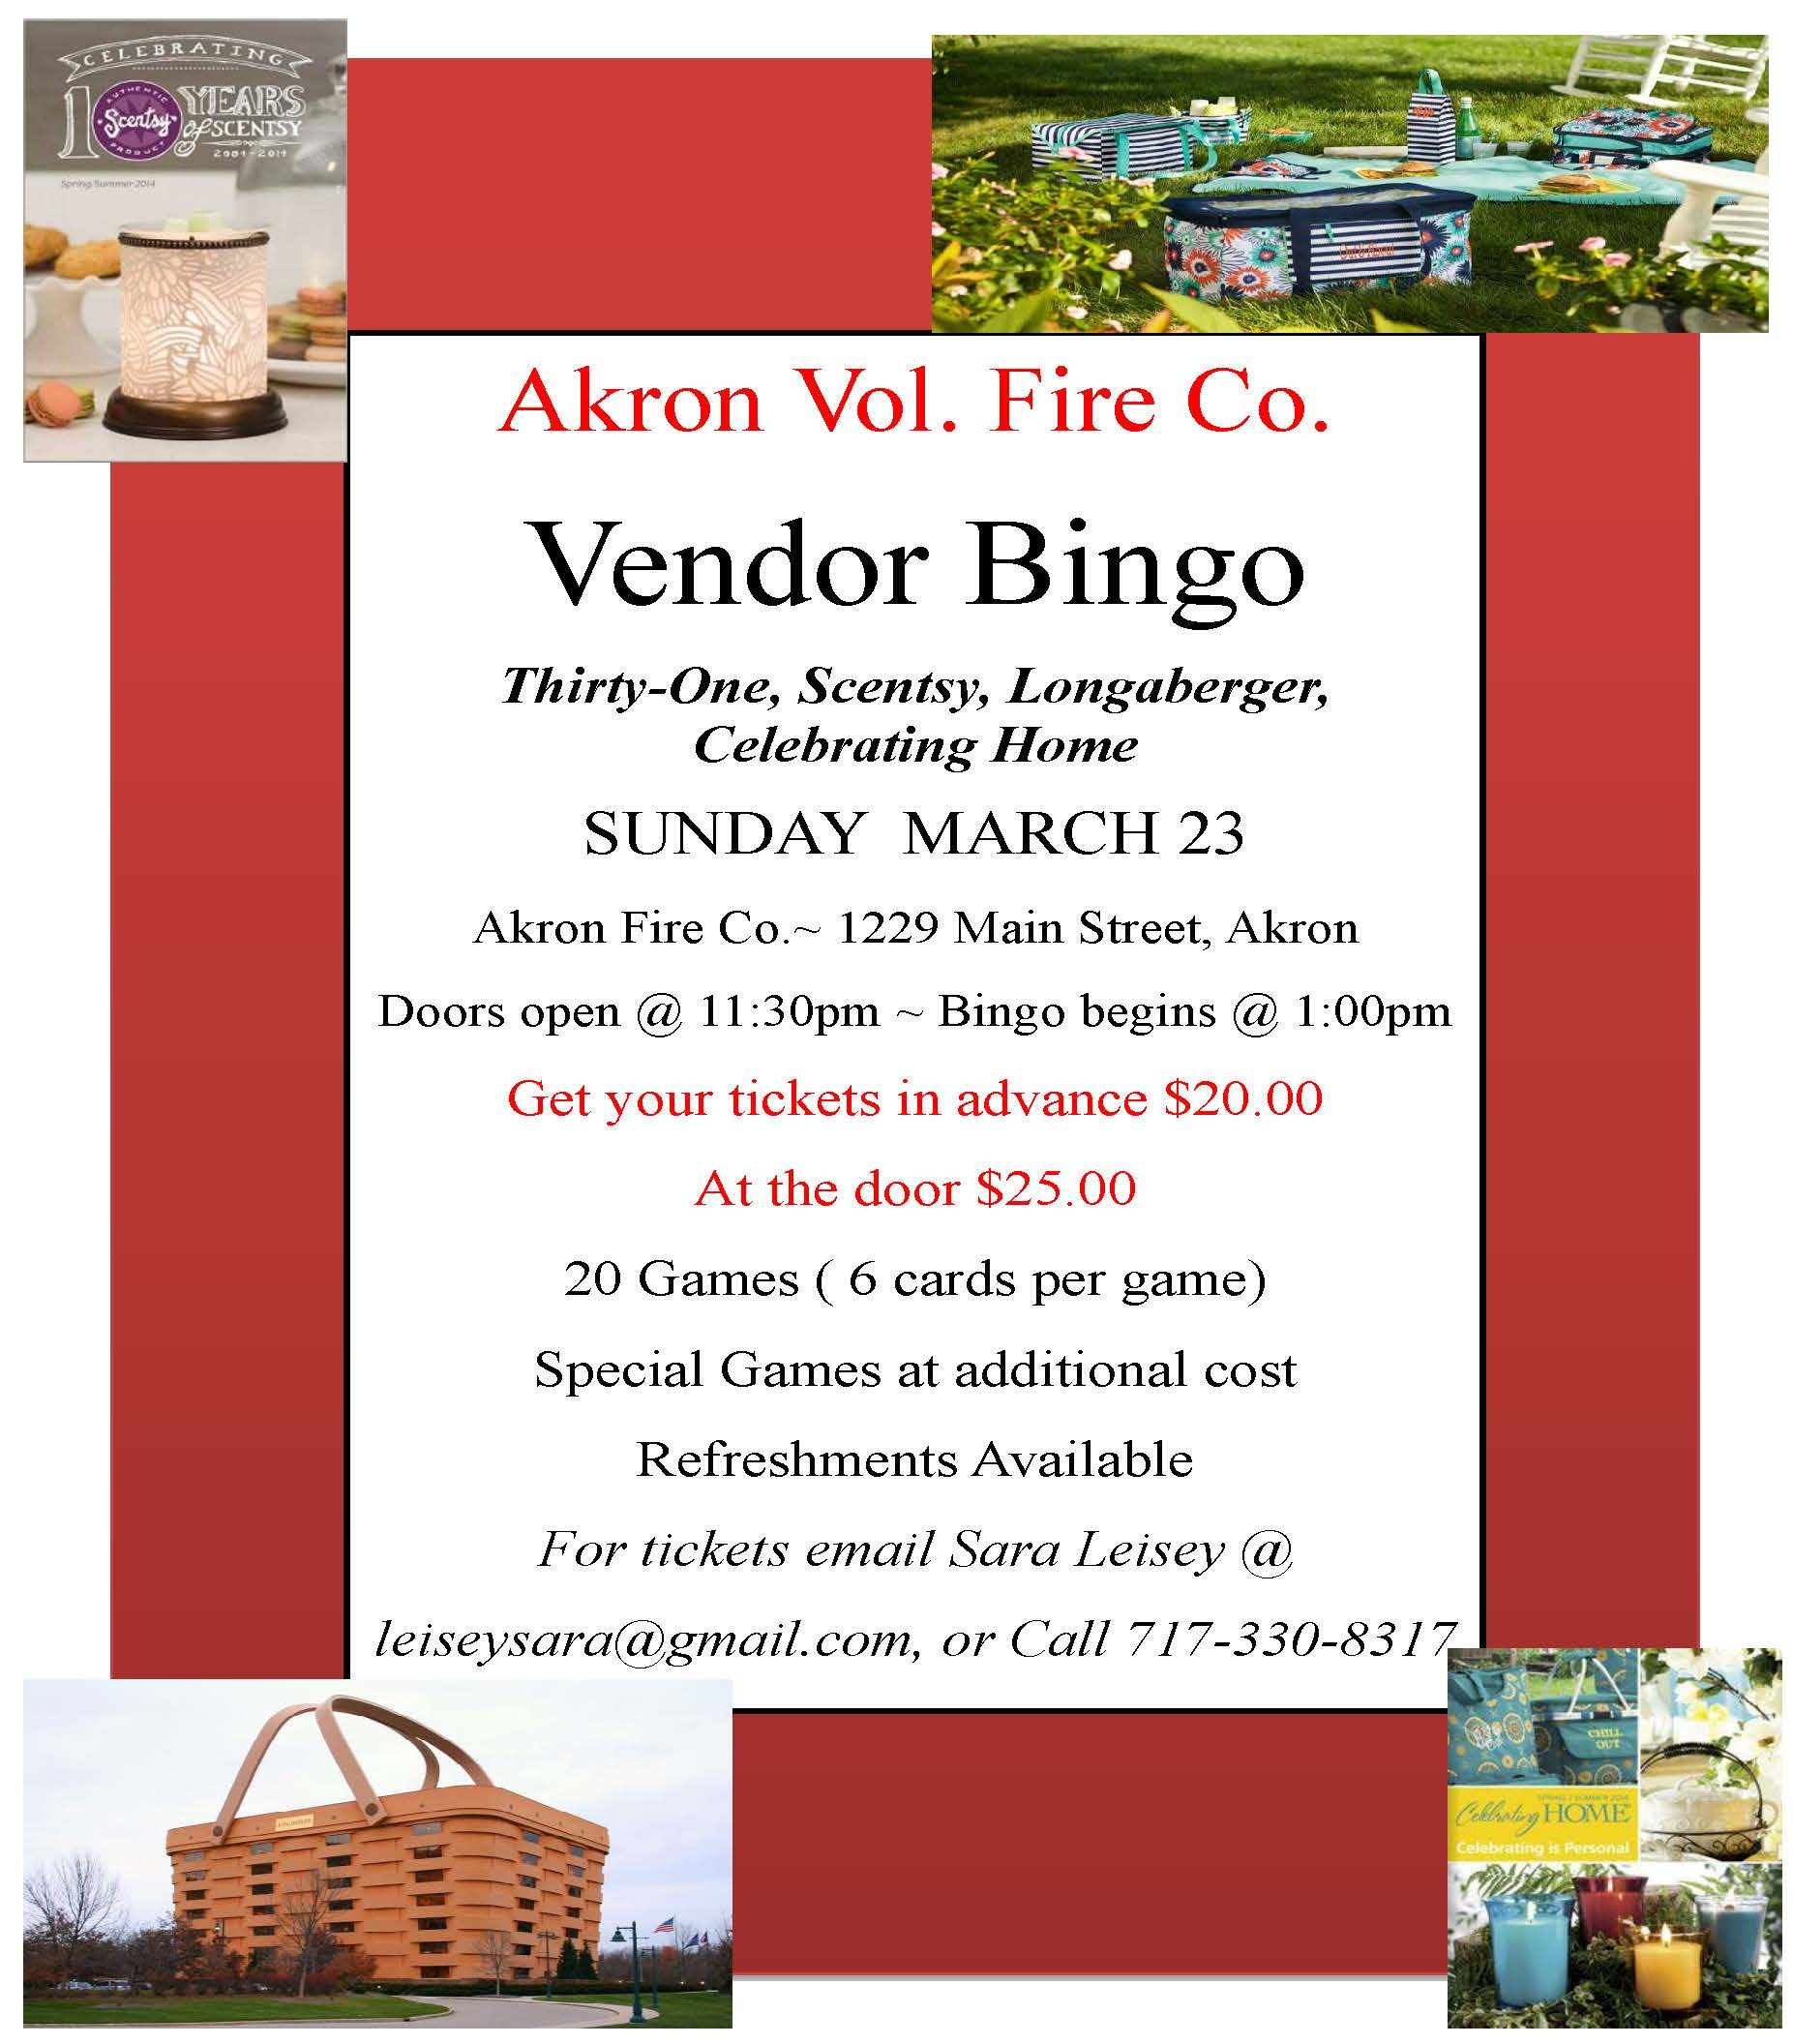 2014 Vendor Bingo Flyer